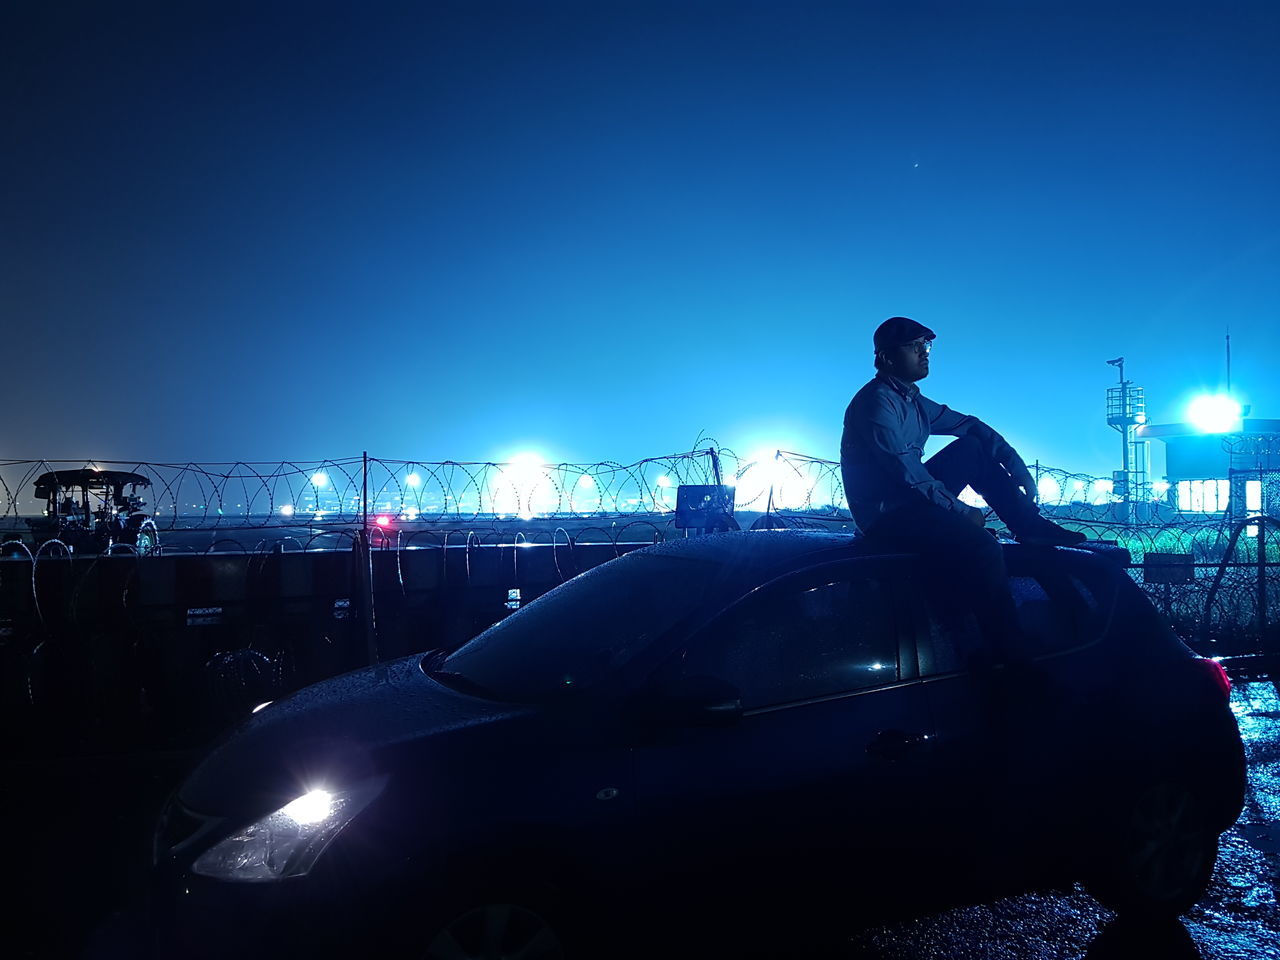 night, illuminated, car, transportation, blue, one person, clear sky, real people, mode of transport, standing, outdoors, men, full length, young adult, sky, architecture, people